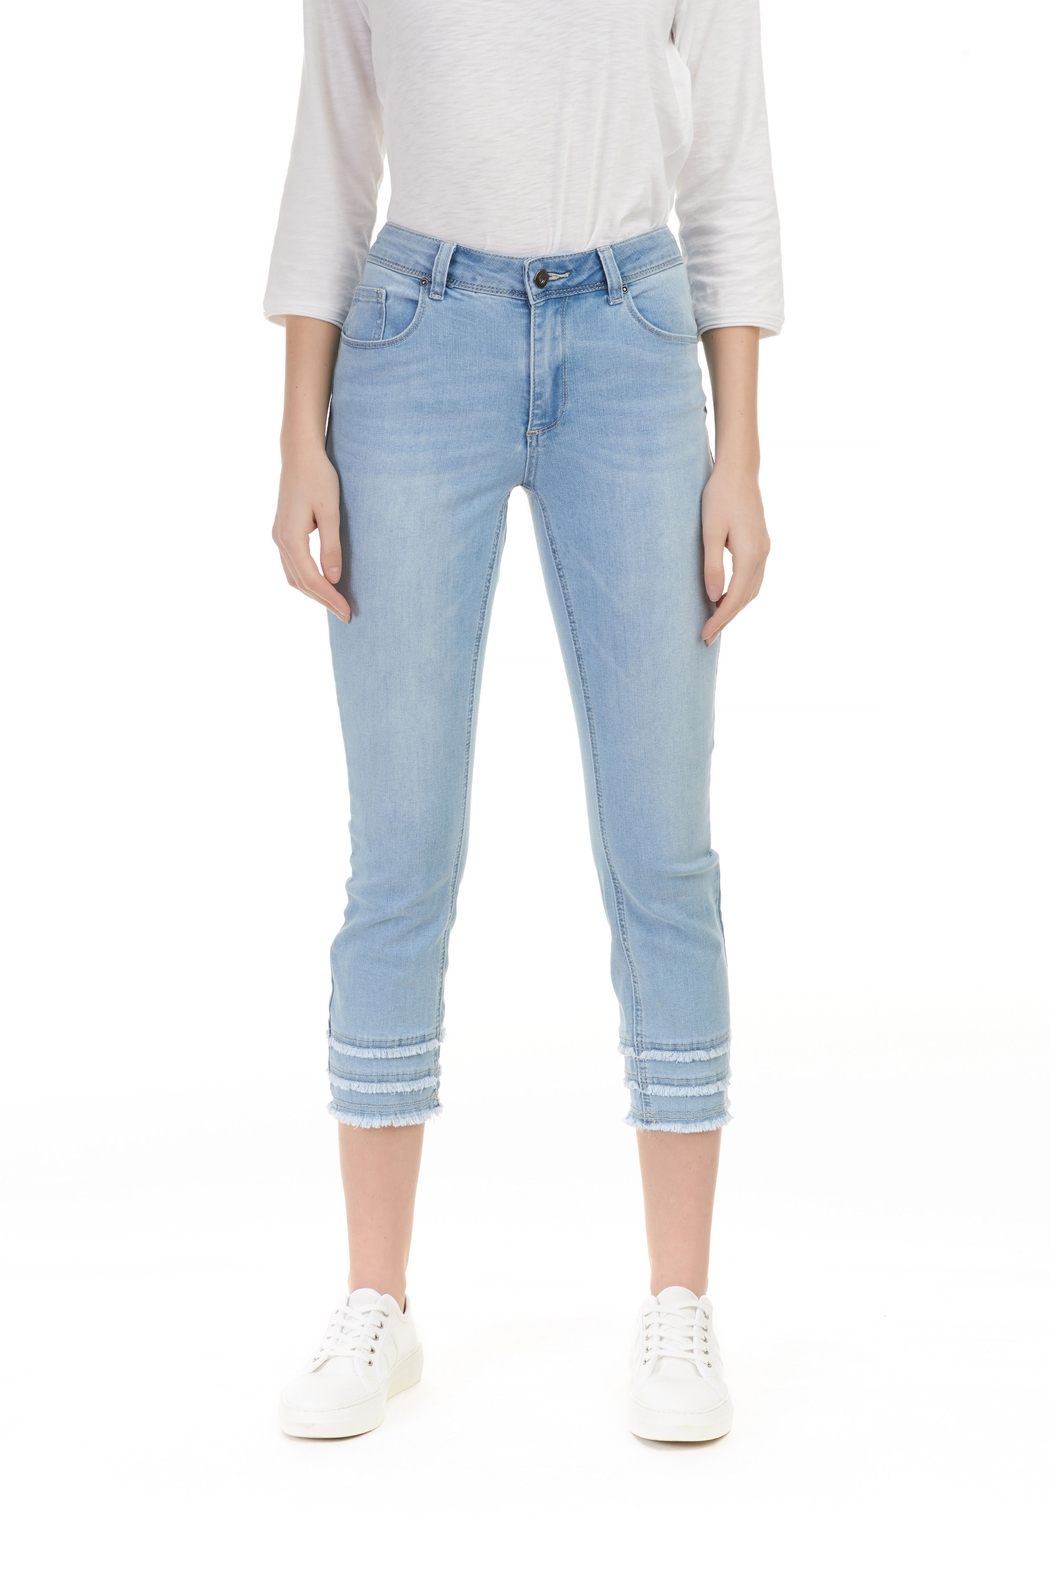 Charlie B. Stretch Denim Ankle Jean - Main Image